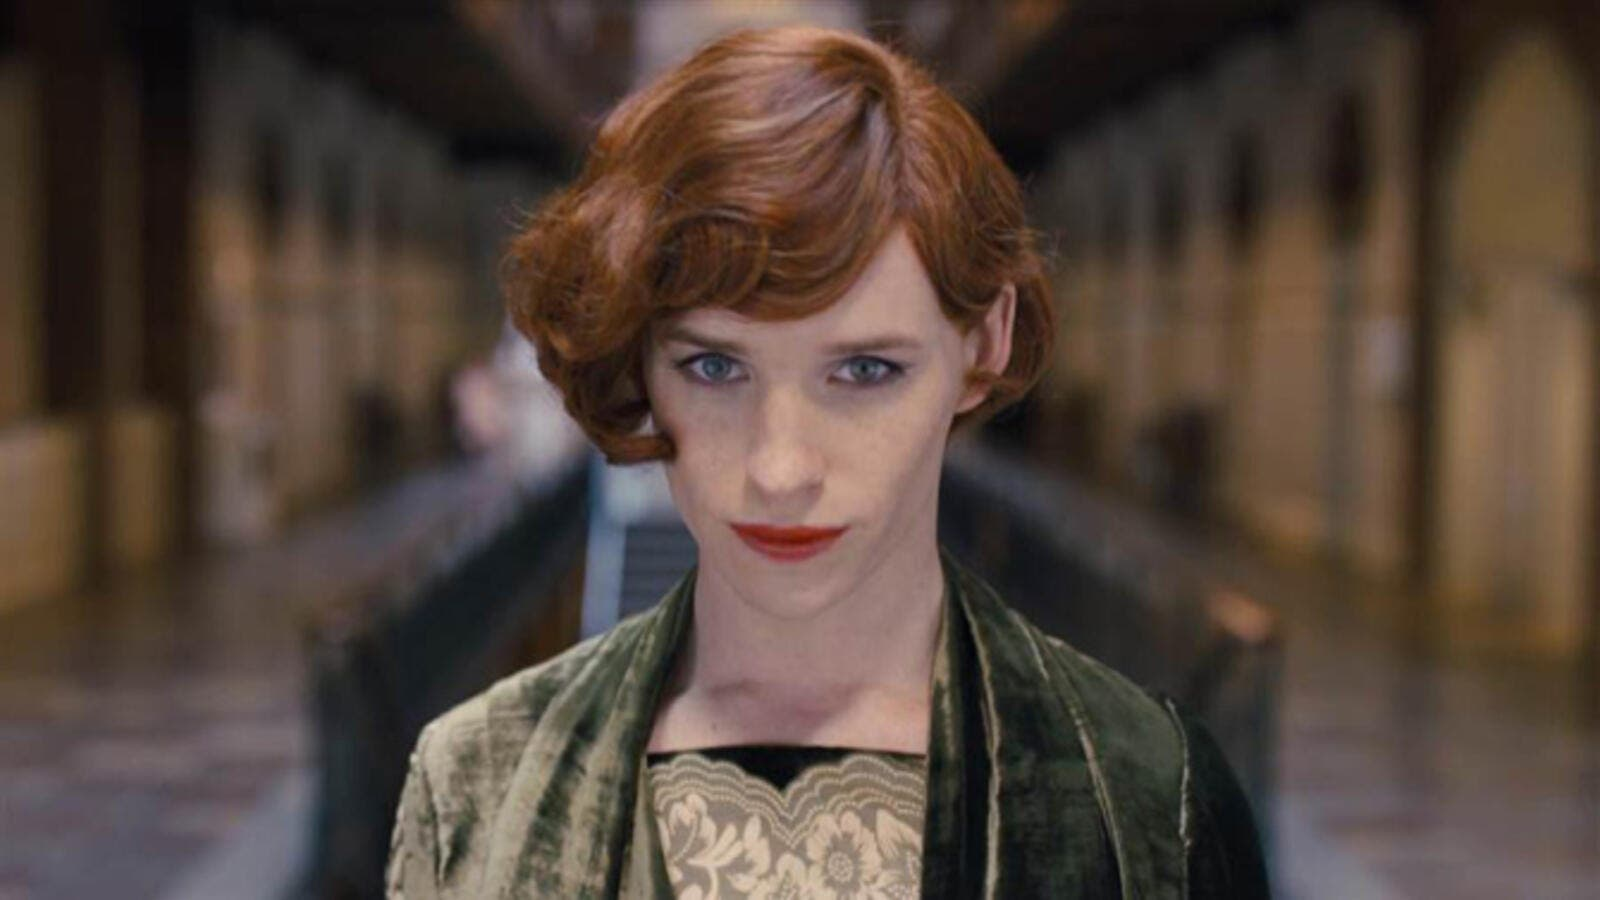 Qatar has pulled 'The Danish Girl' from its cinemas after complaints about its 'moral depravity.' (Variety.com)